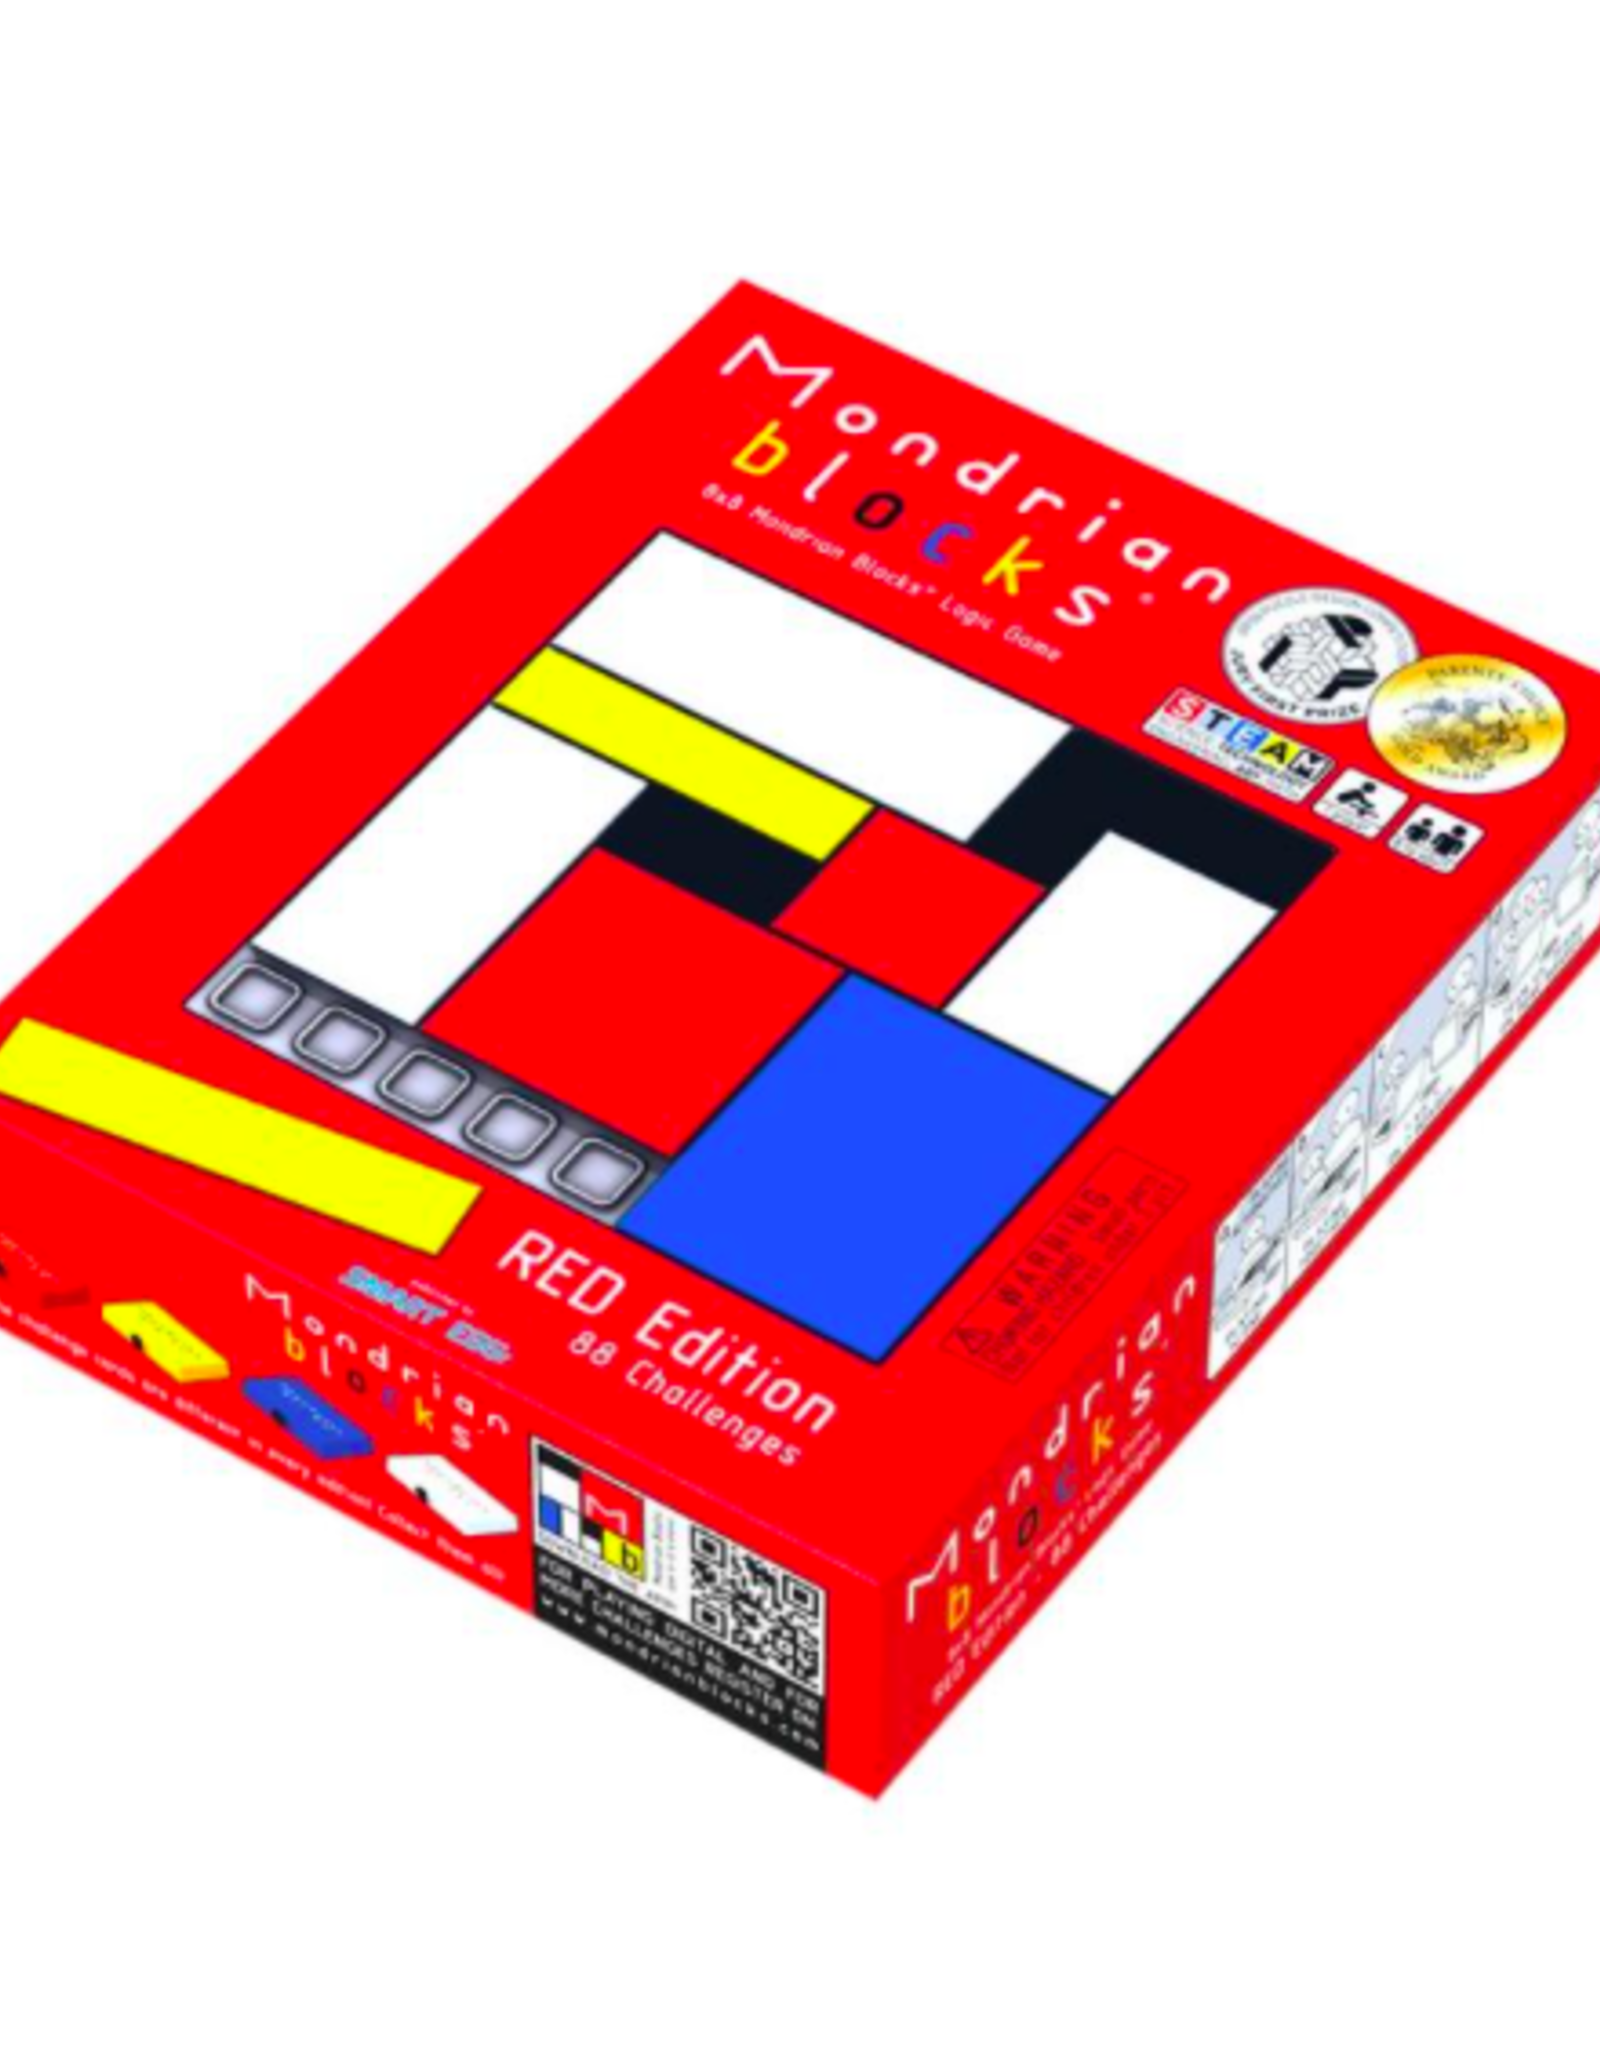 Mondrian Blocks Red Edition